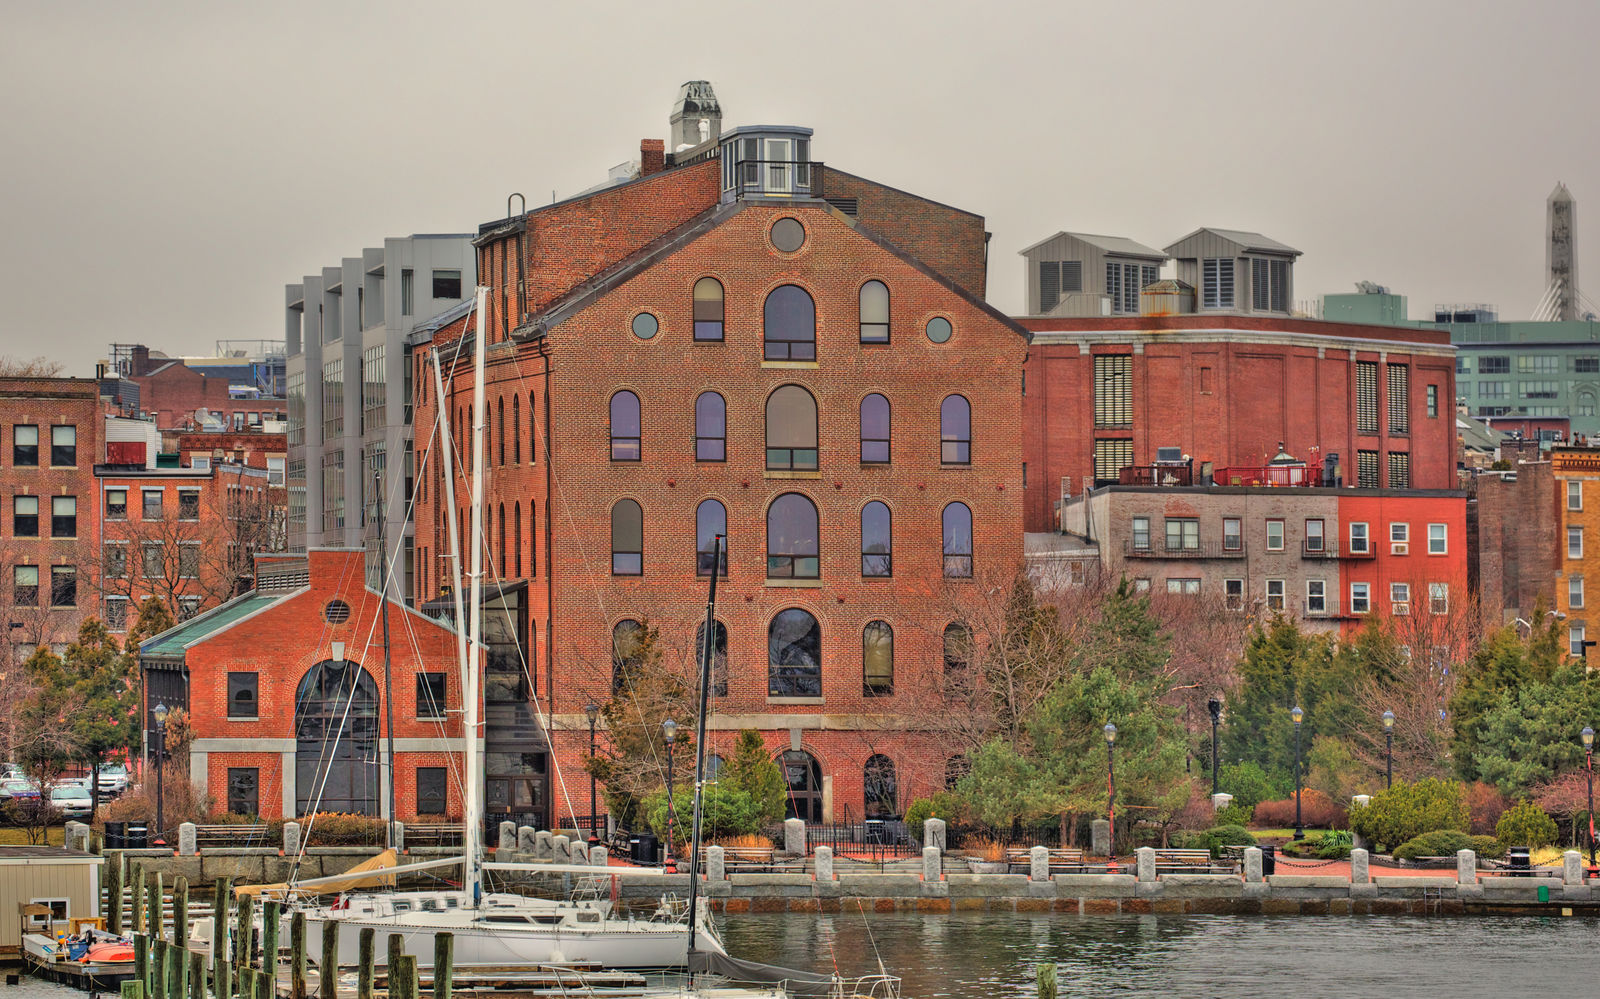 A view of Boston's historic Pilot House from the harbor